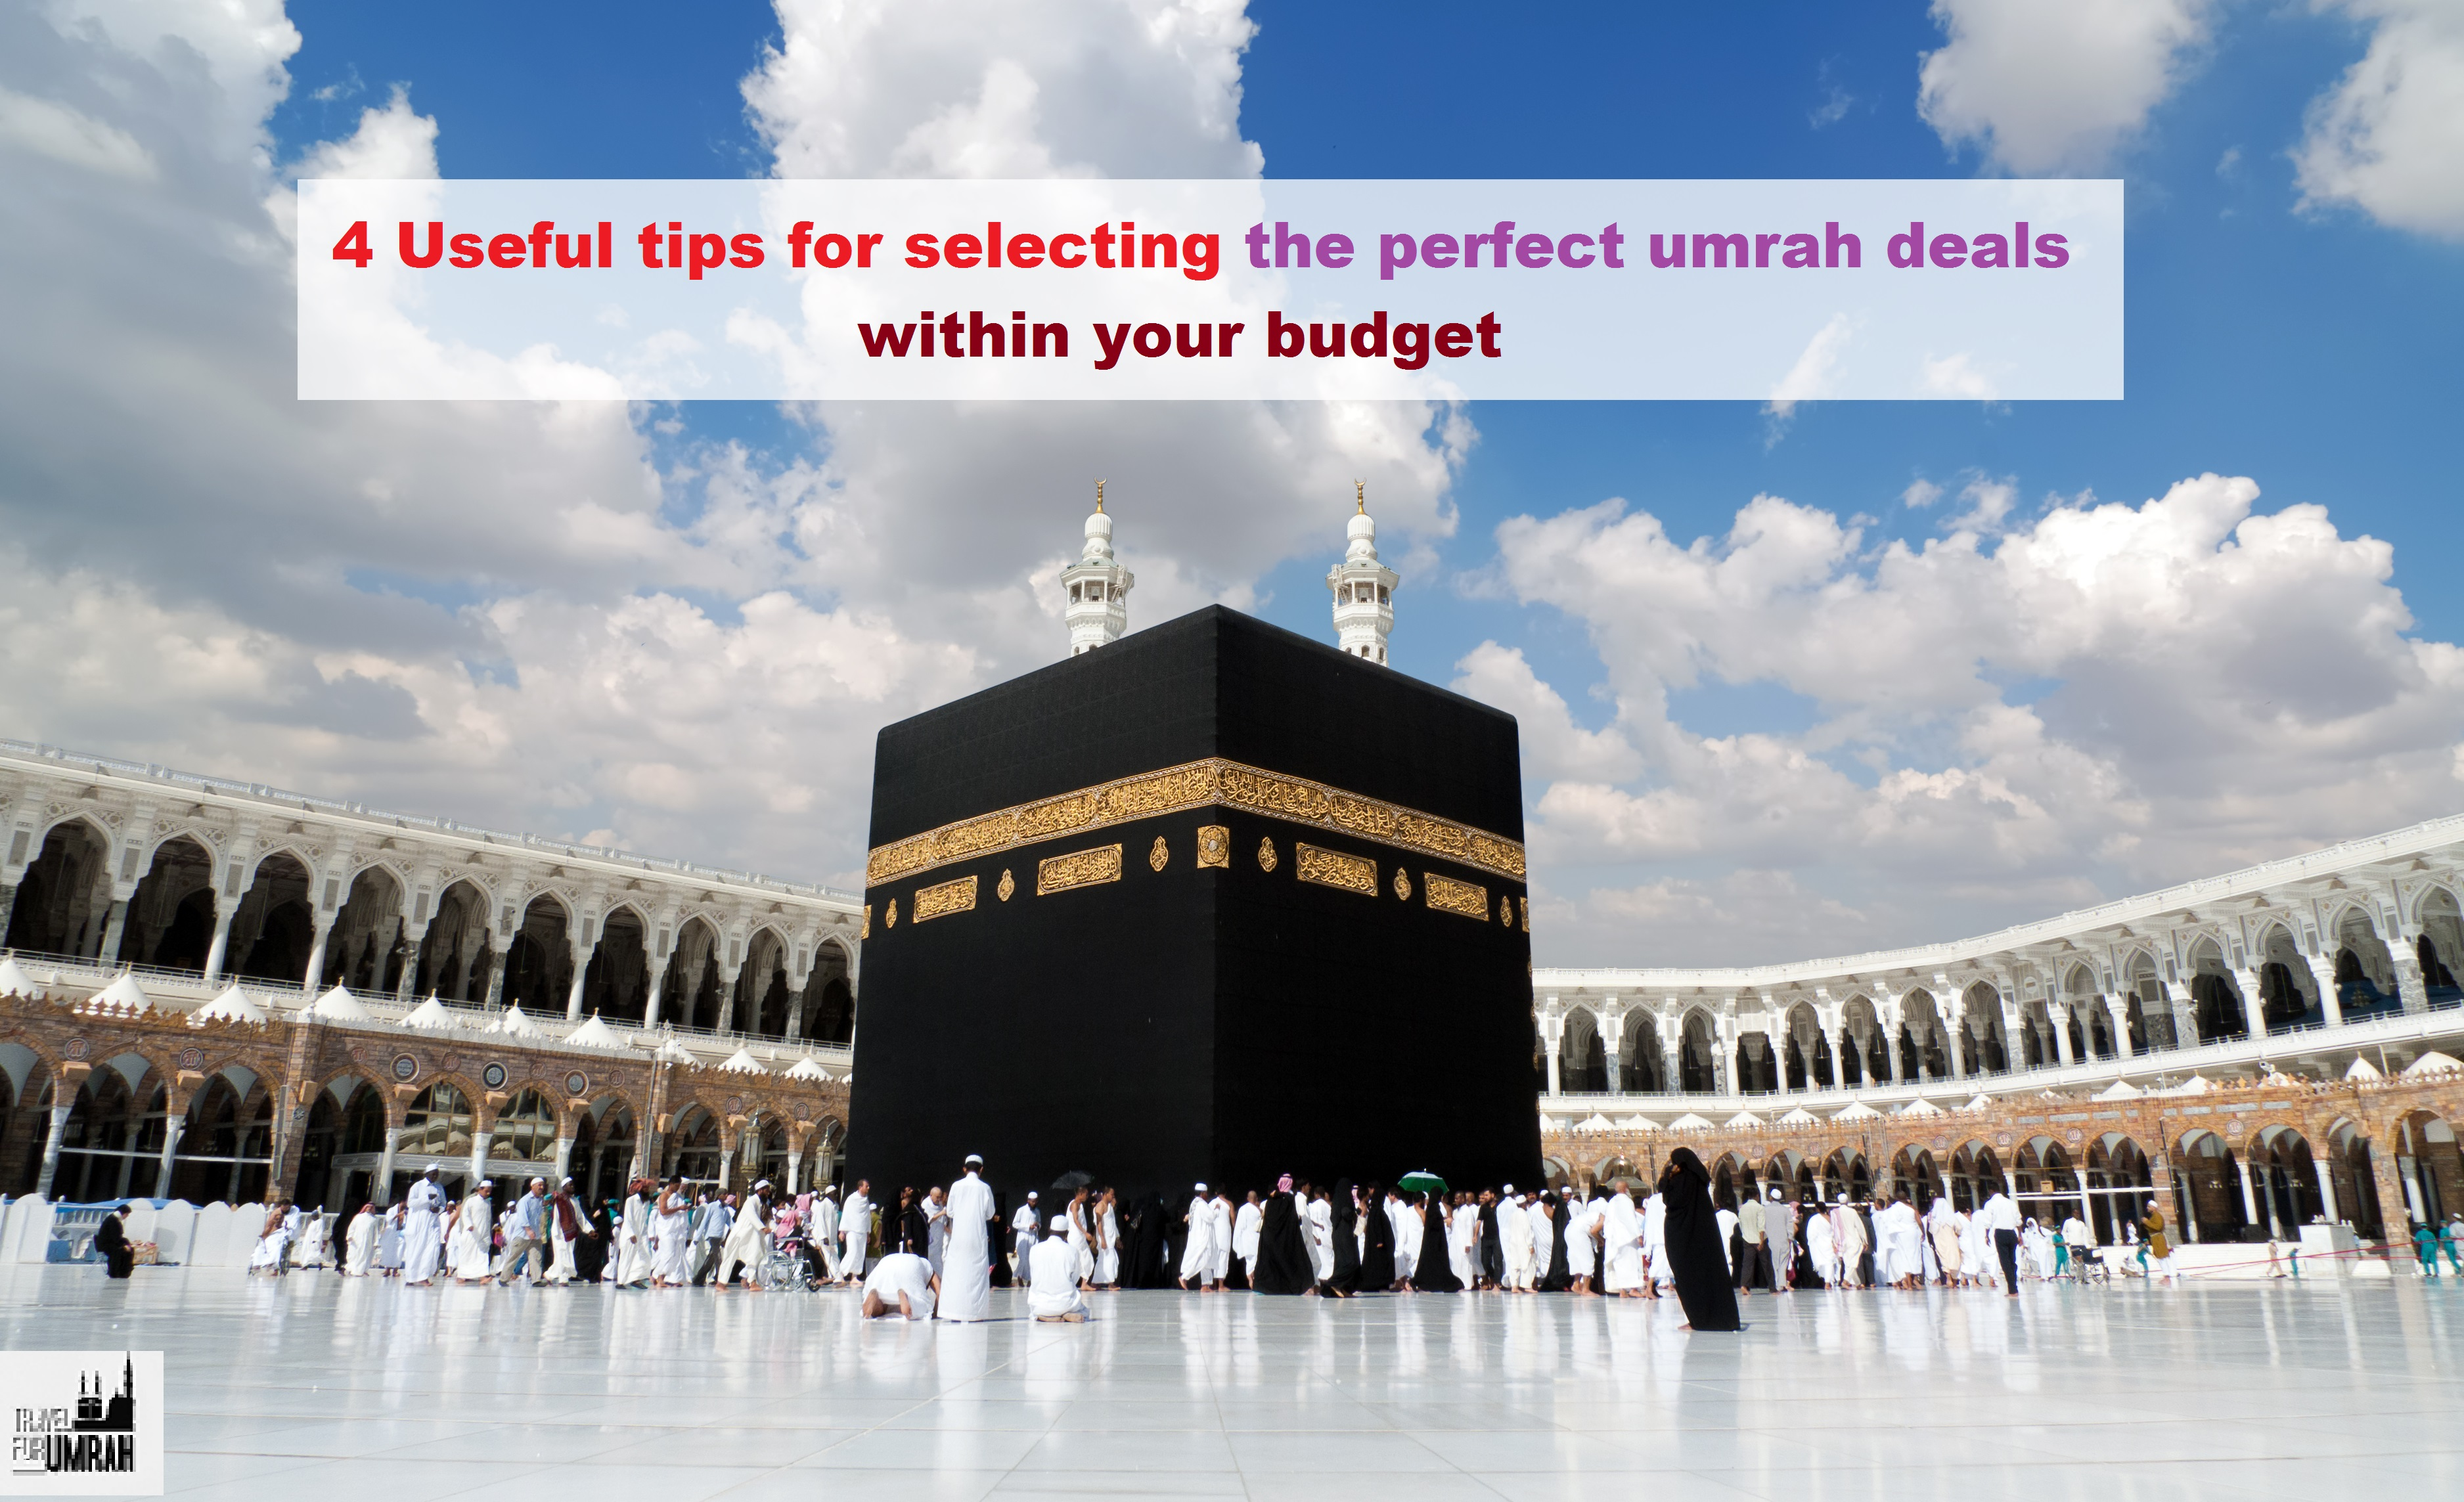 4 Useful tips for selecting the perfect umrah deals within your budget